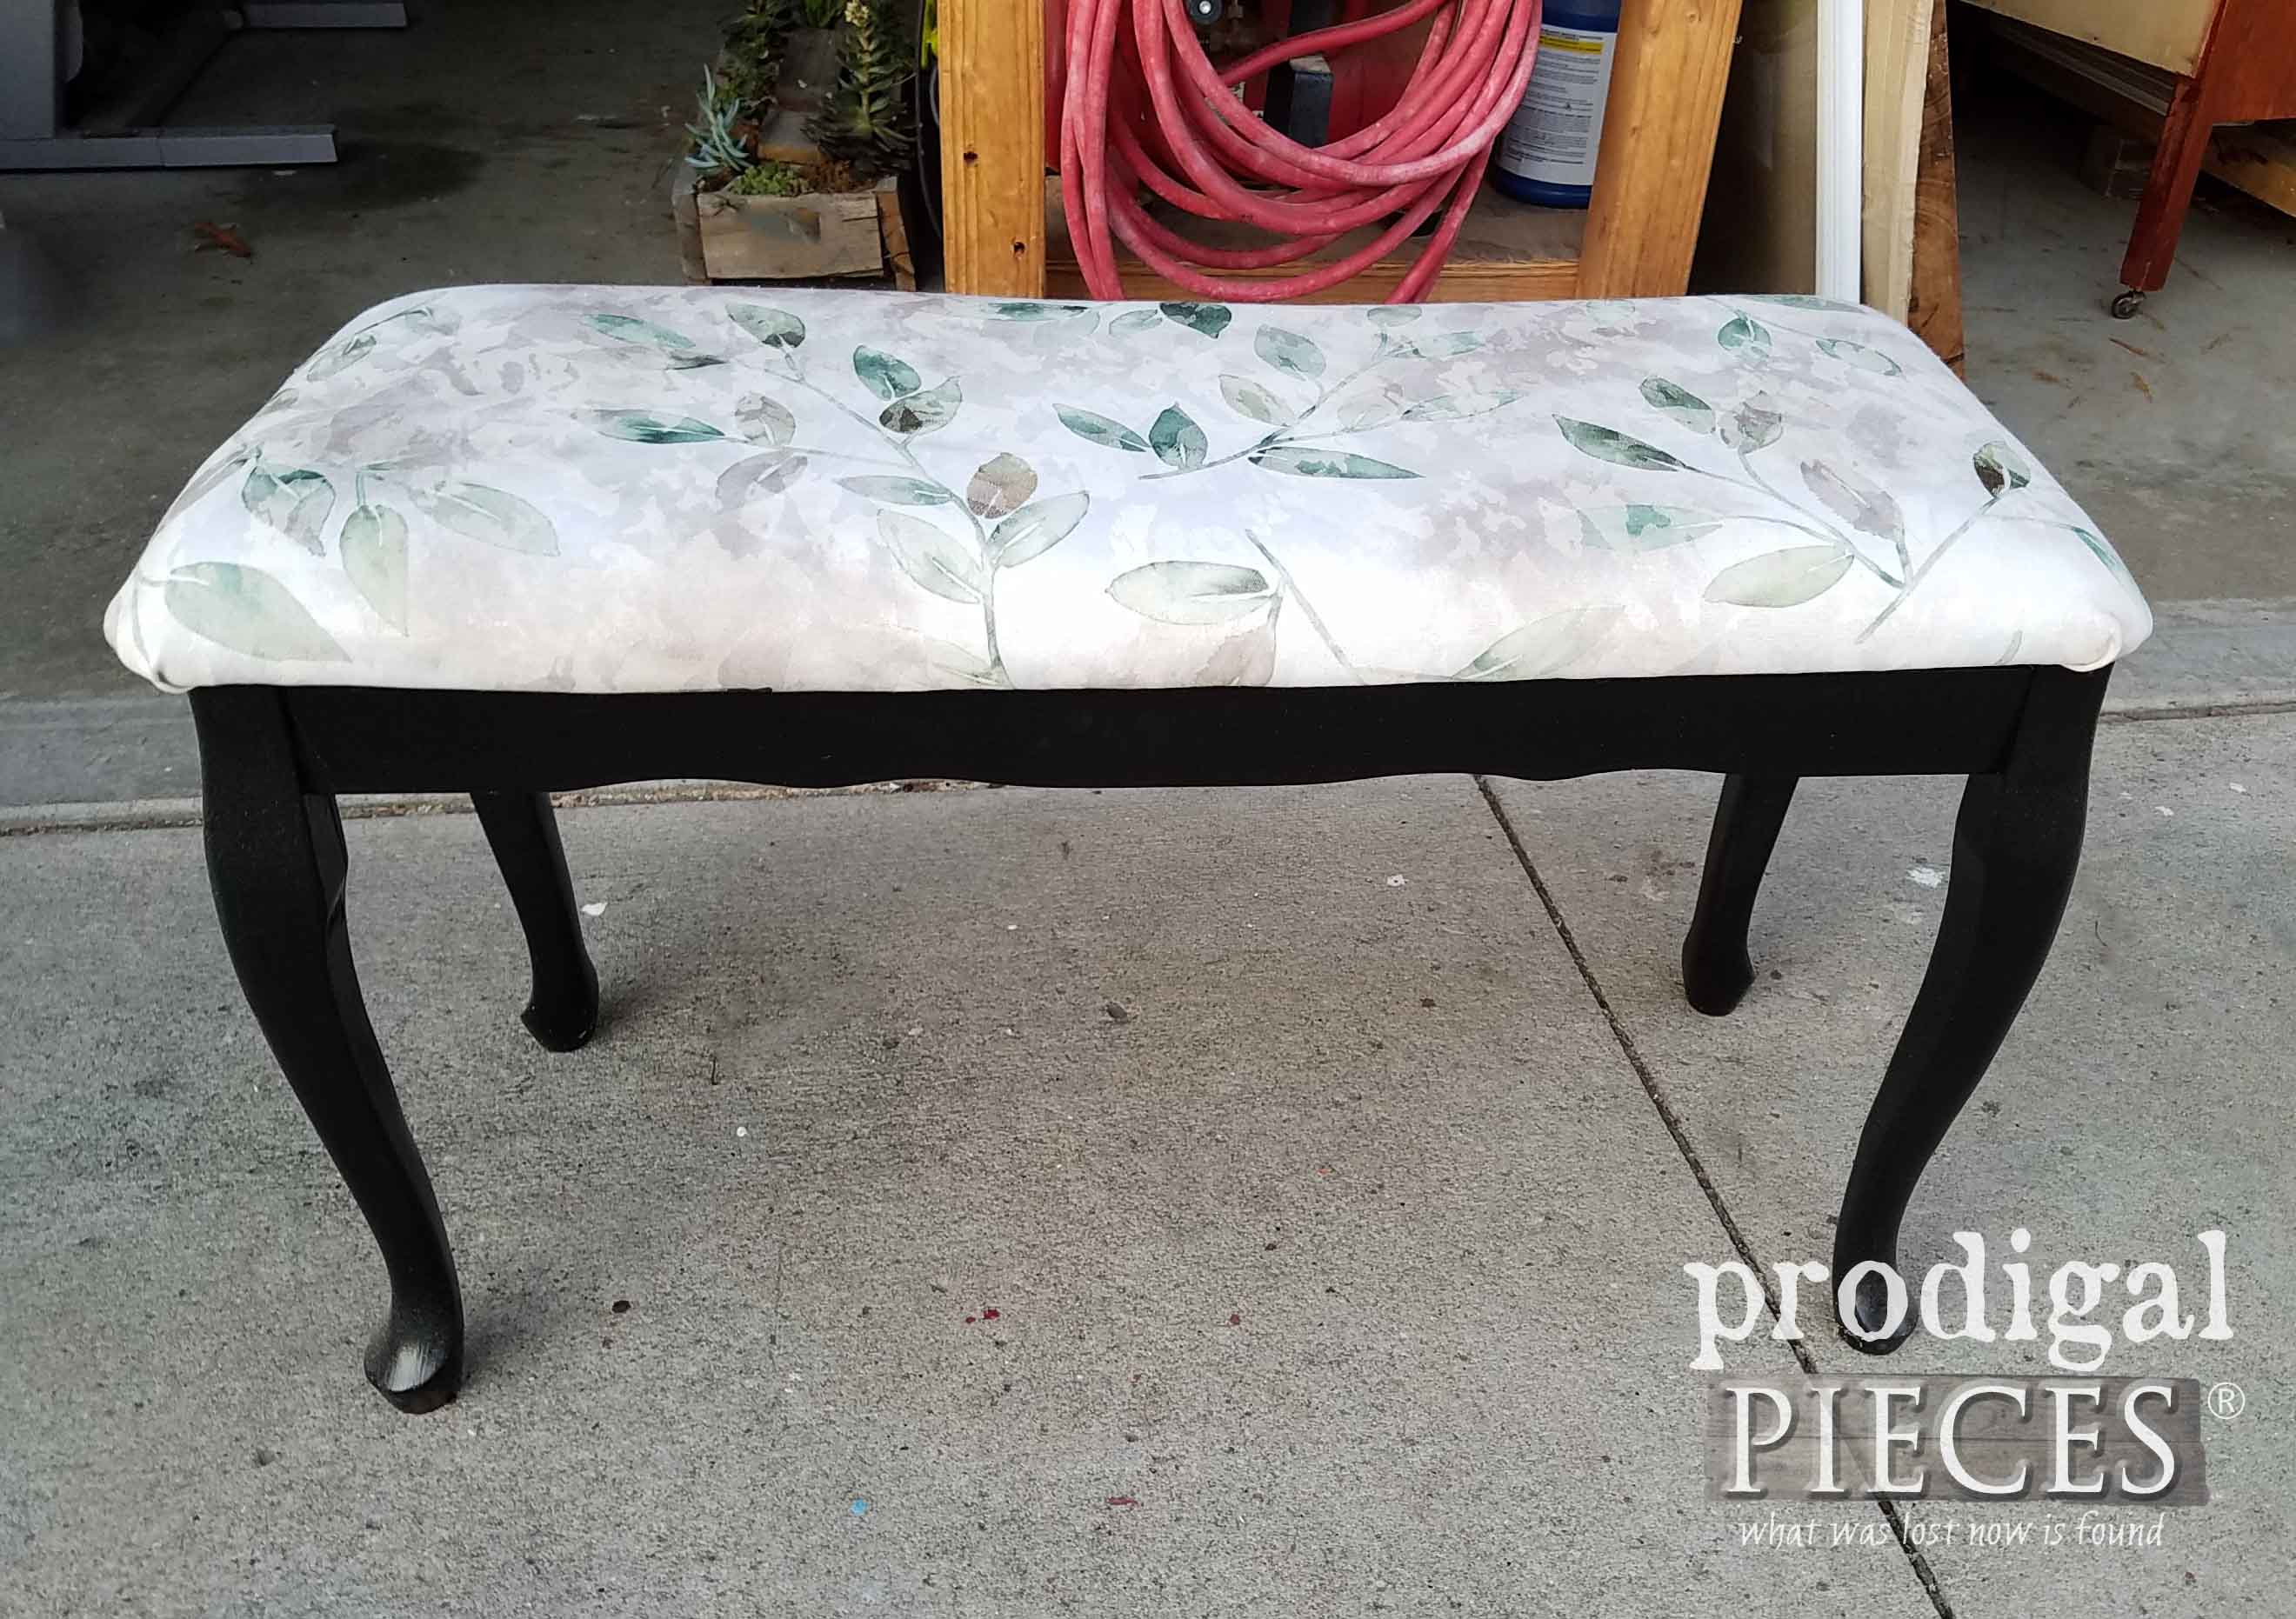 Upholstered Bench Before Makeover by Prodigal Pieces | prodigalpieces.com